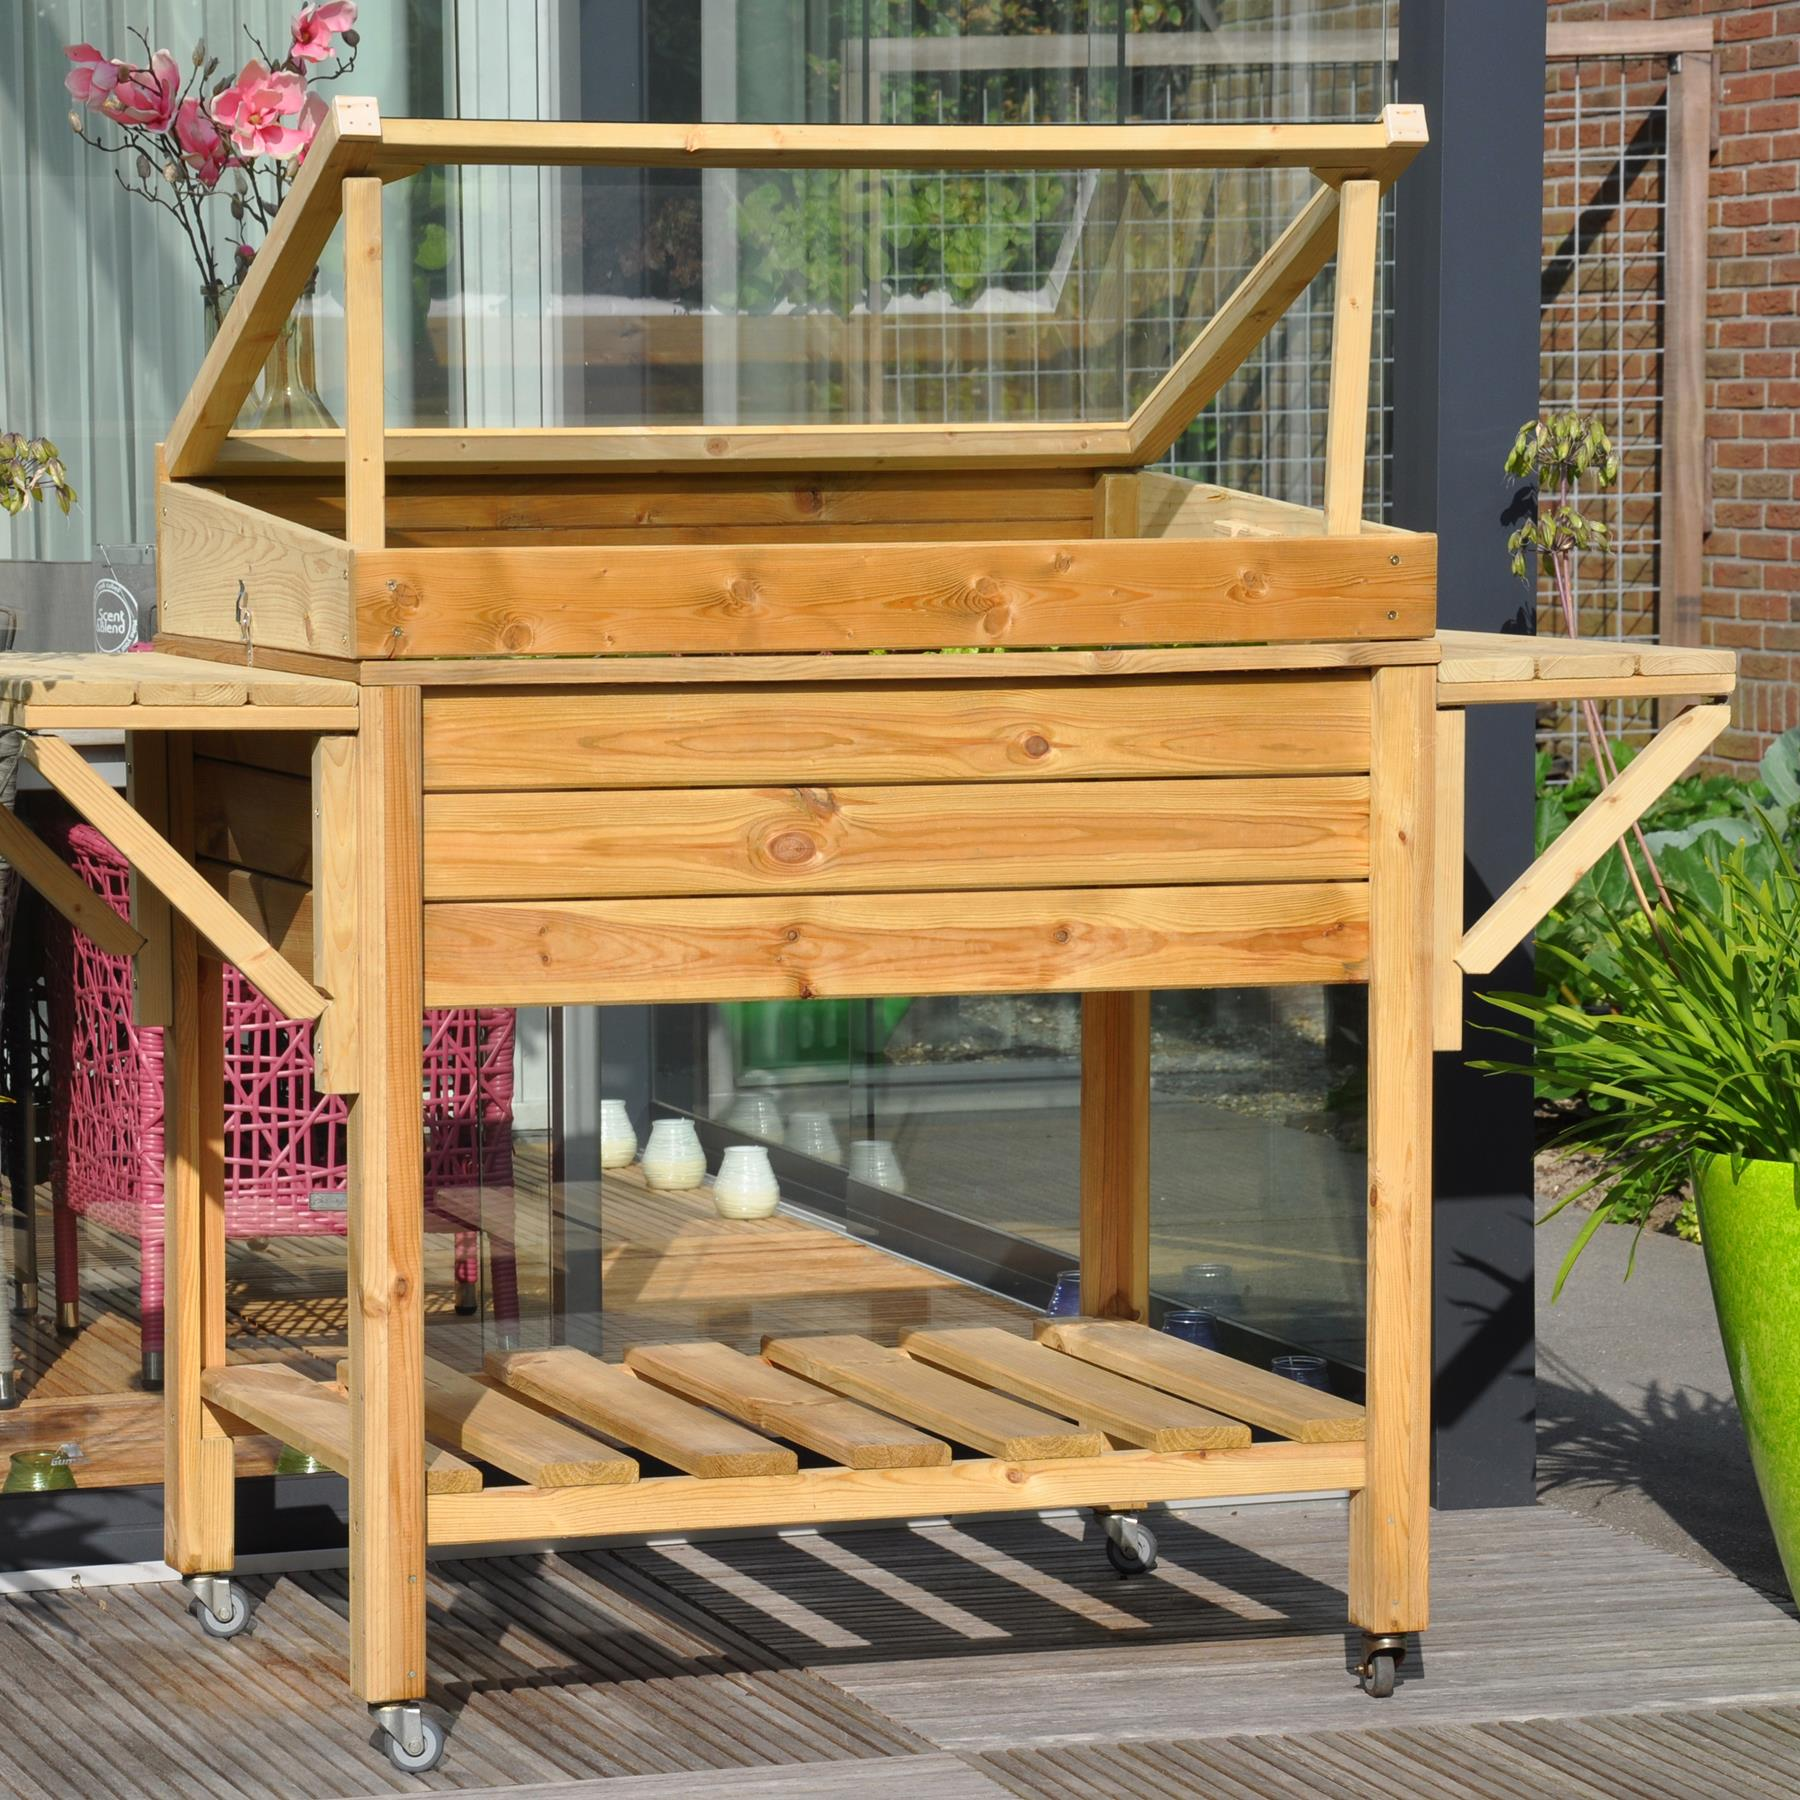 Kassen voor in de tuin | Royal Wheels | Stek Magazine